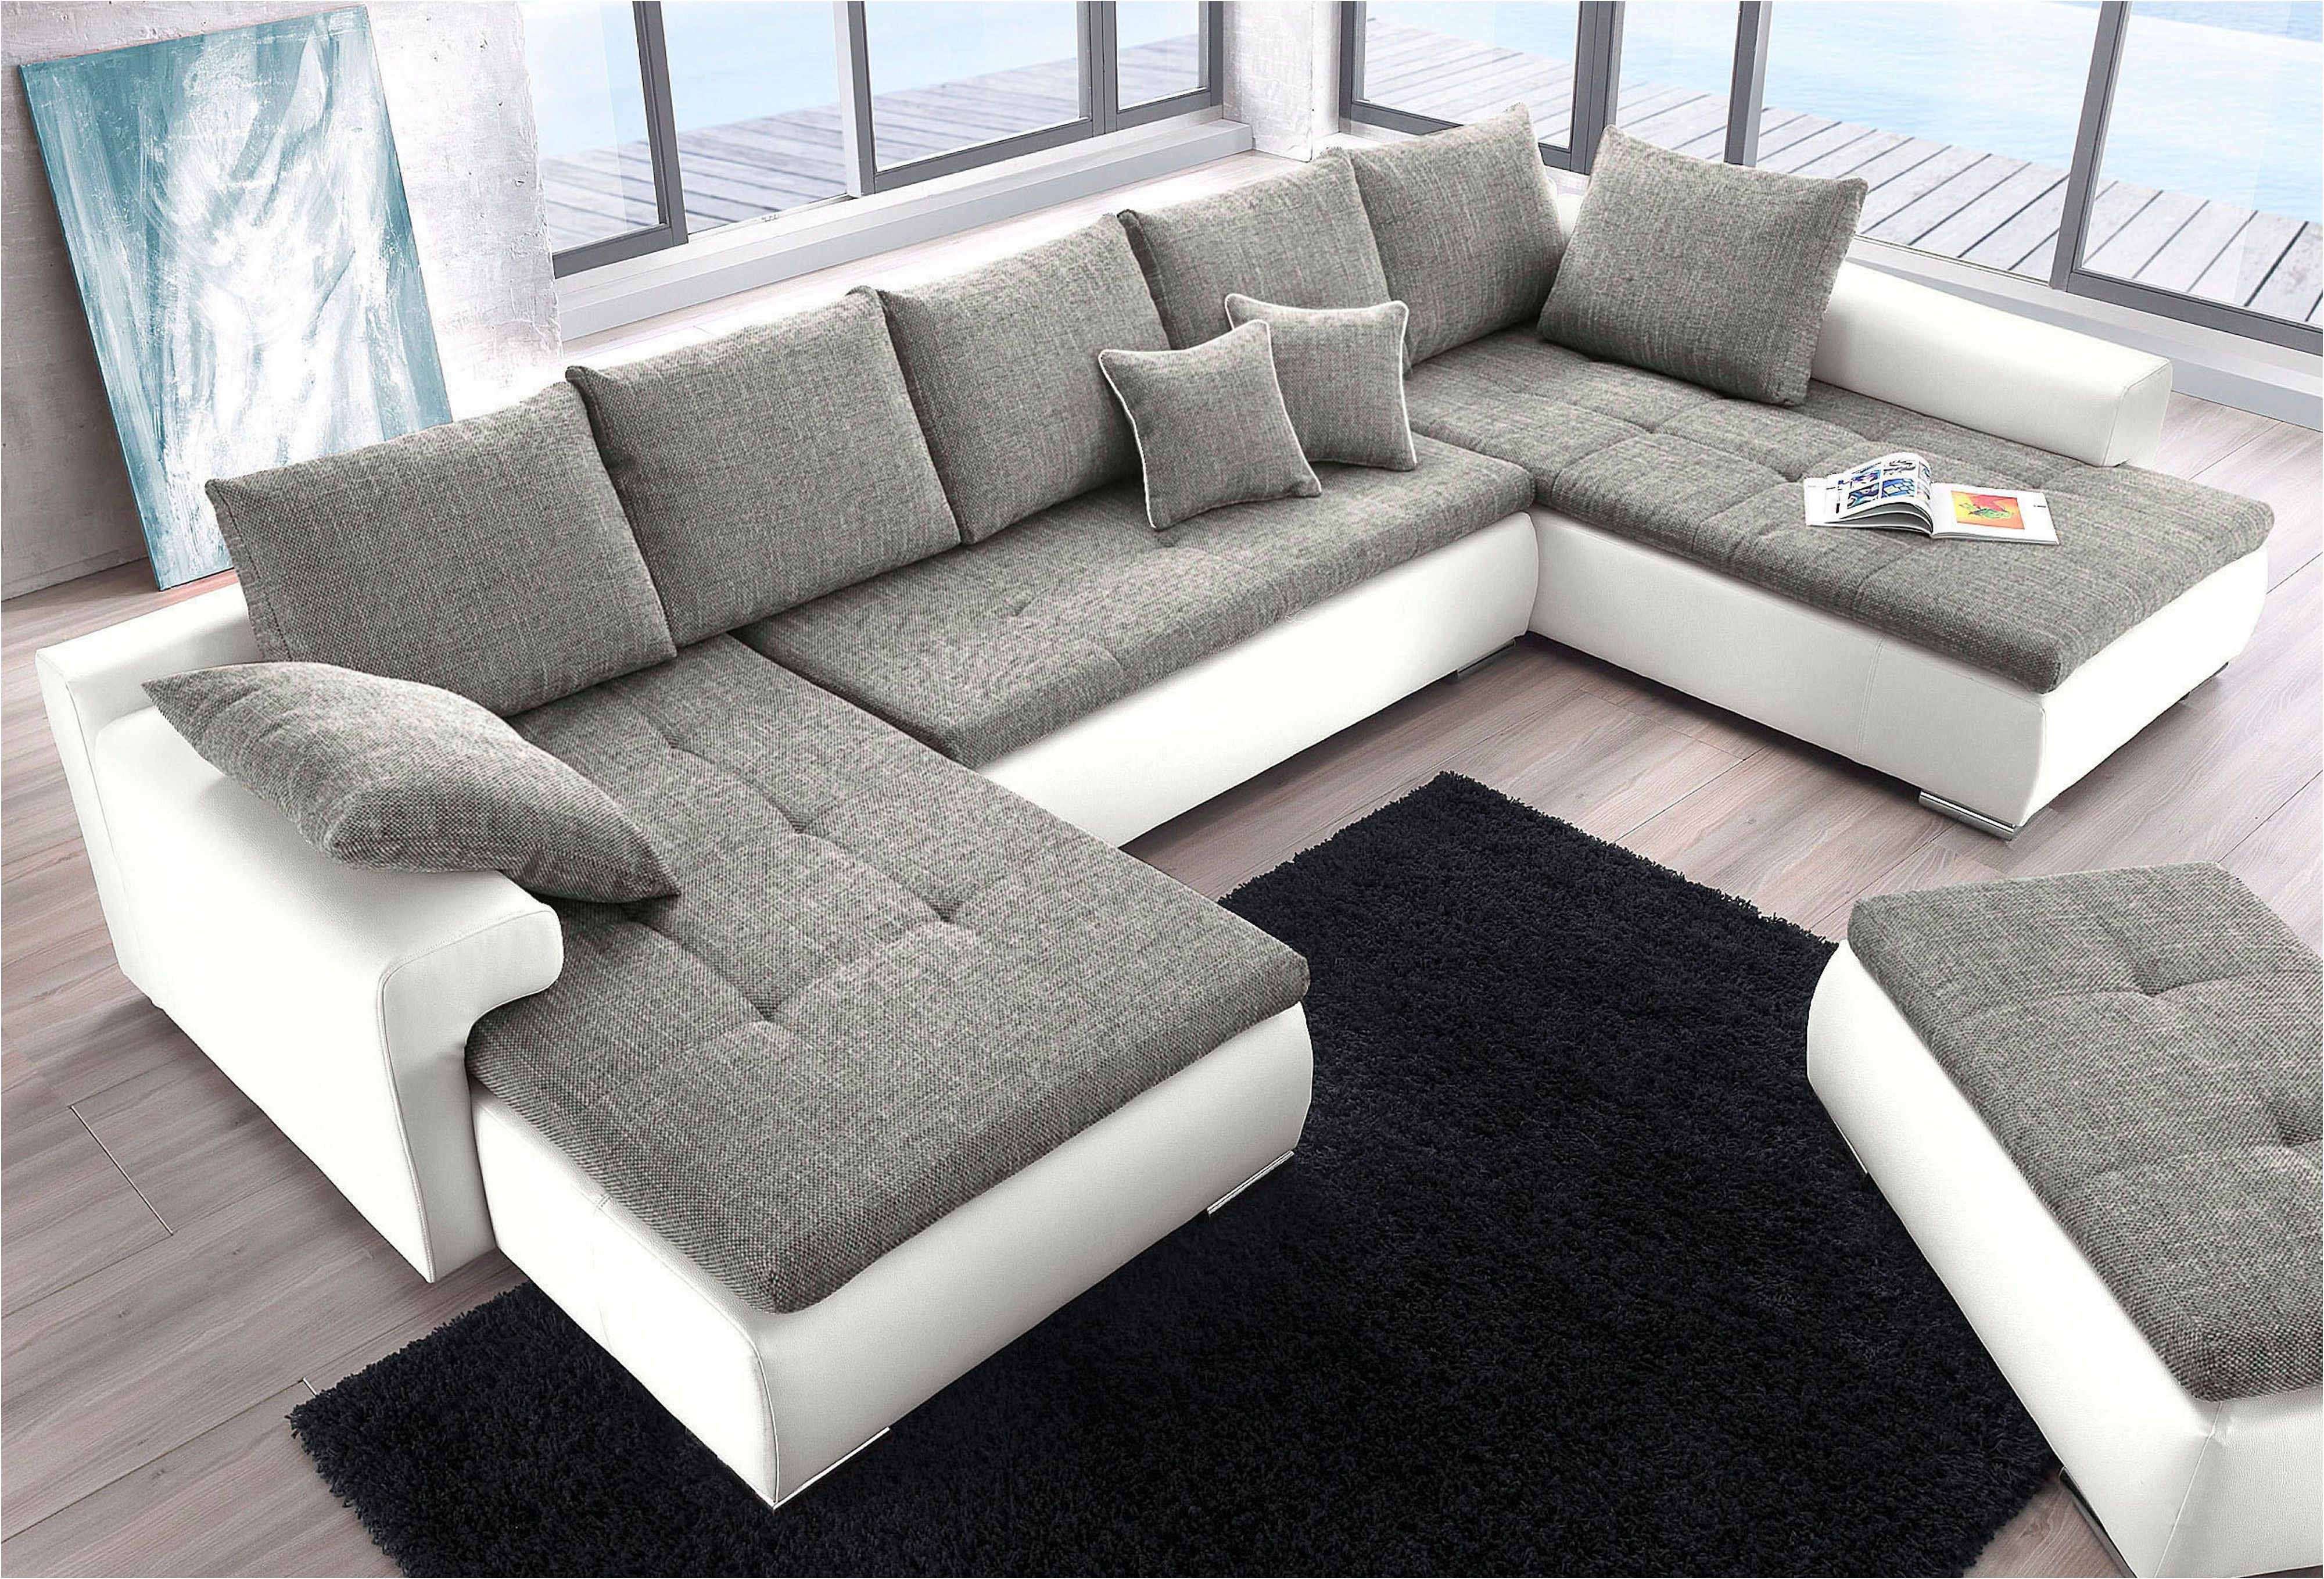 Exklusiv Sofa 3 2 1 Mit Schlaffunktion In 2020 Living Room Sofa Set Modern Sofa Designs Corner Sofa Design